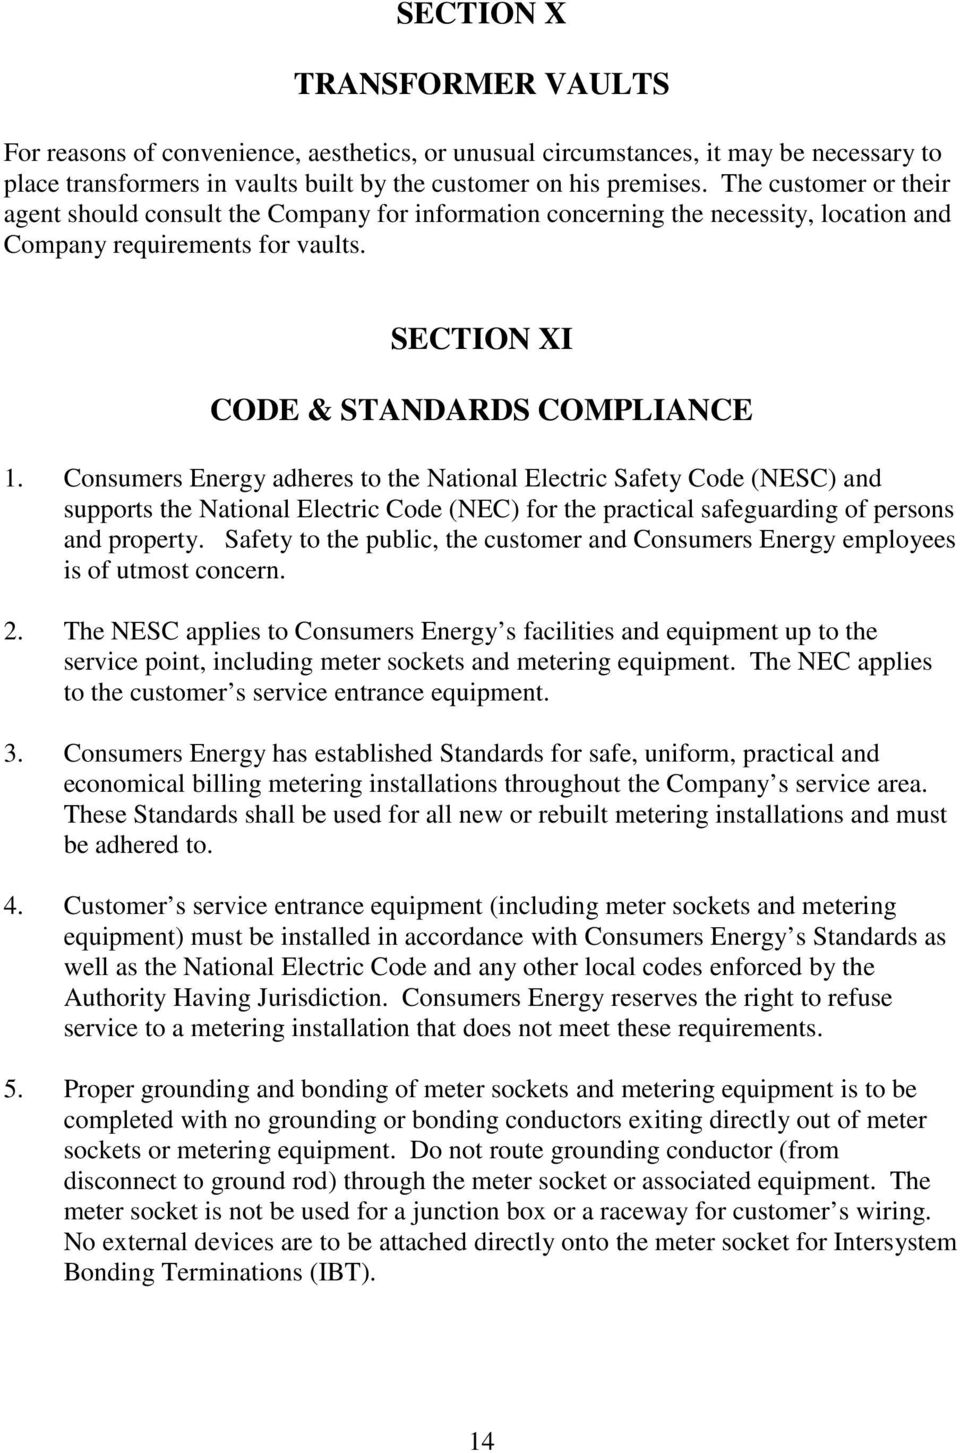 Consumers Energy adheres to the National Electric Safety Code (NESC) and supports the National Electric Code (NEC) for the practical safeguarding of persons and property.